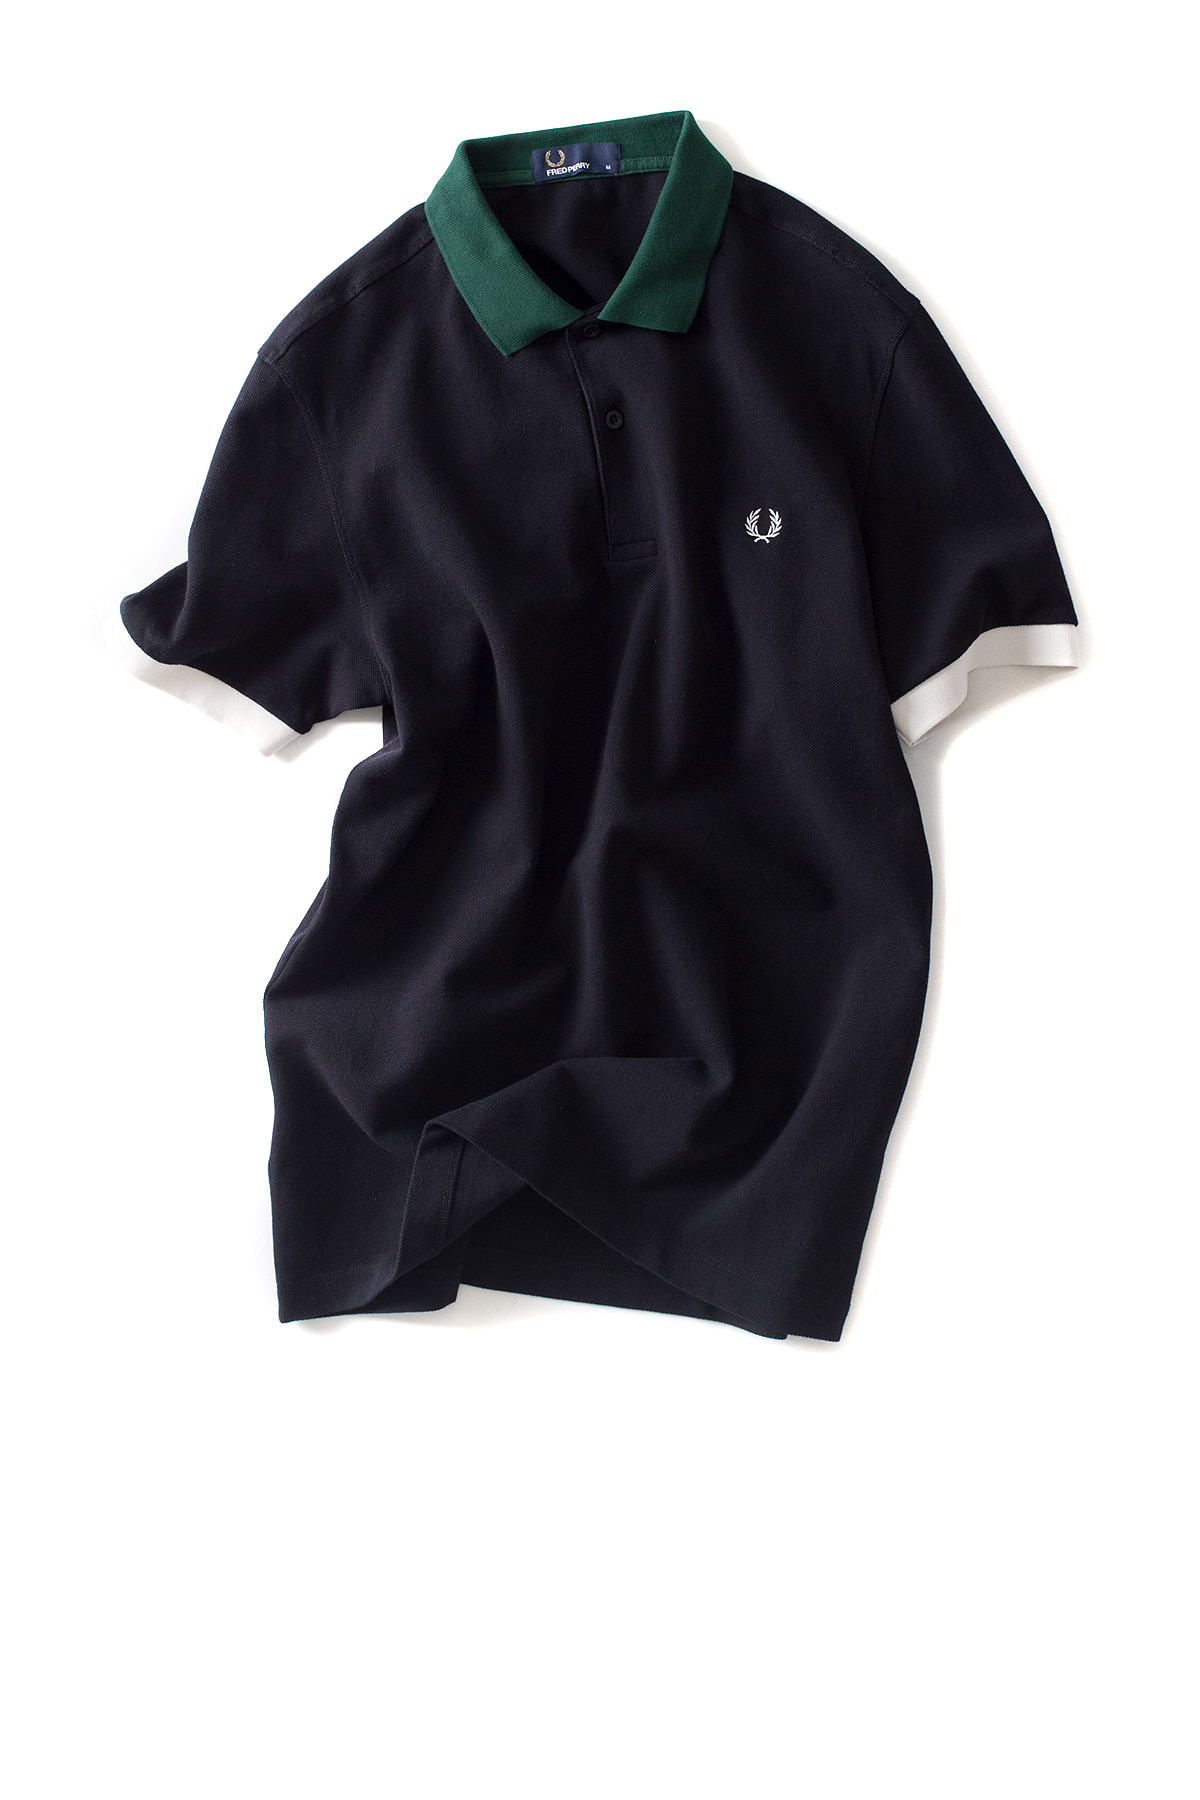 FRED PERRY : Colour Block Pique Shirt (Black)